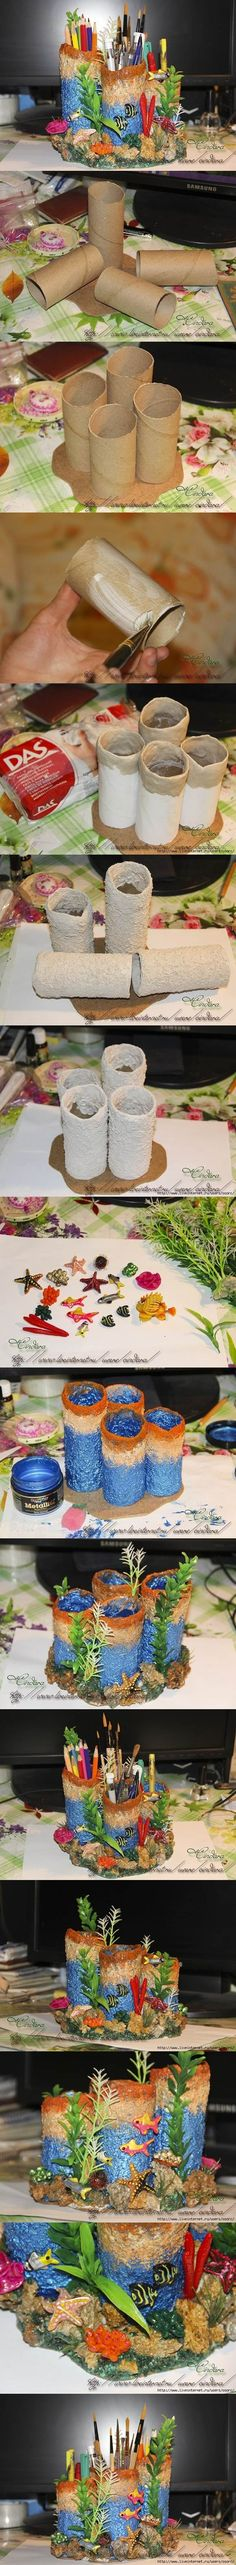 DIY-Coral-Reef-Pencil-Holder-from-Toilet-Paper-Rolls-2 http://www.womans-heaven.com/diy-and-crafts-image-22/